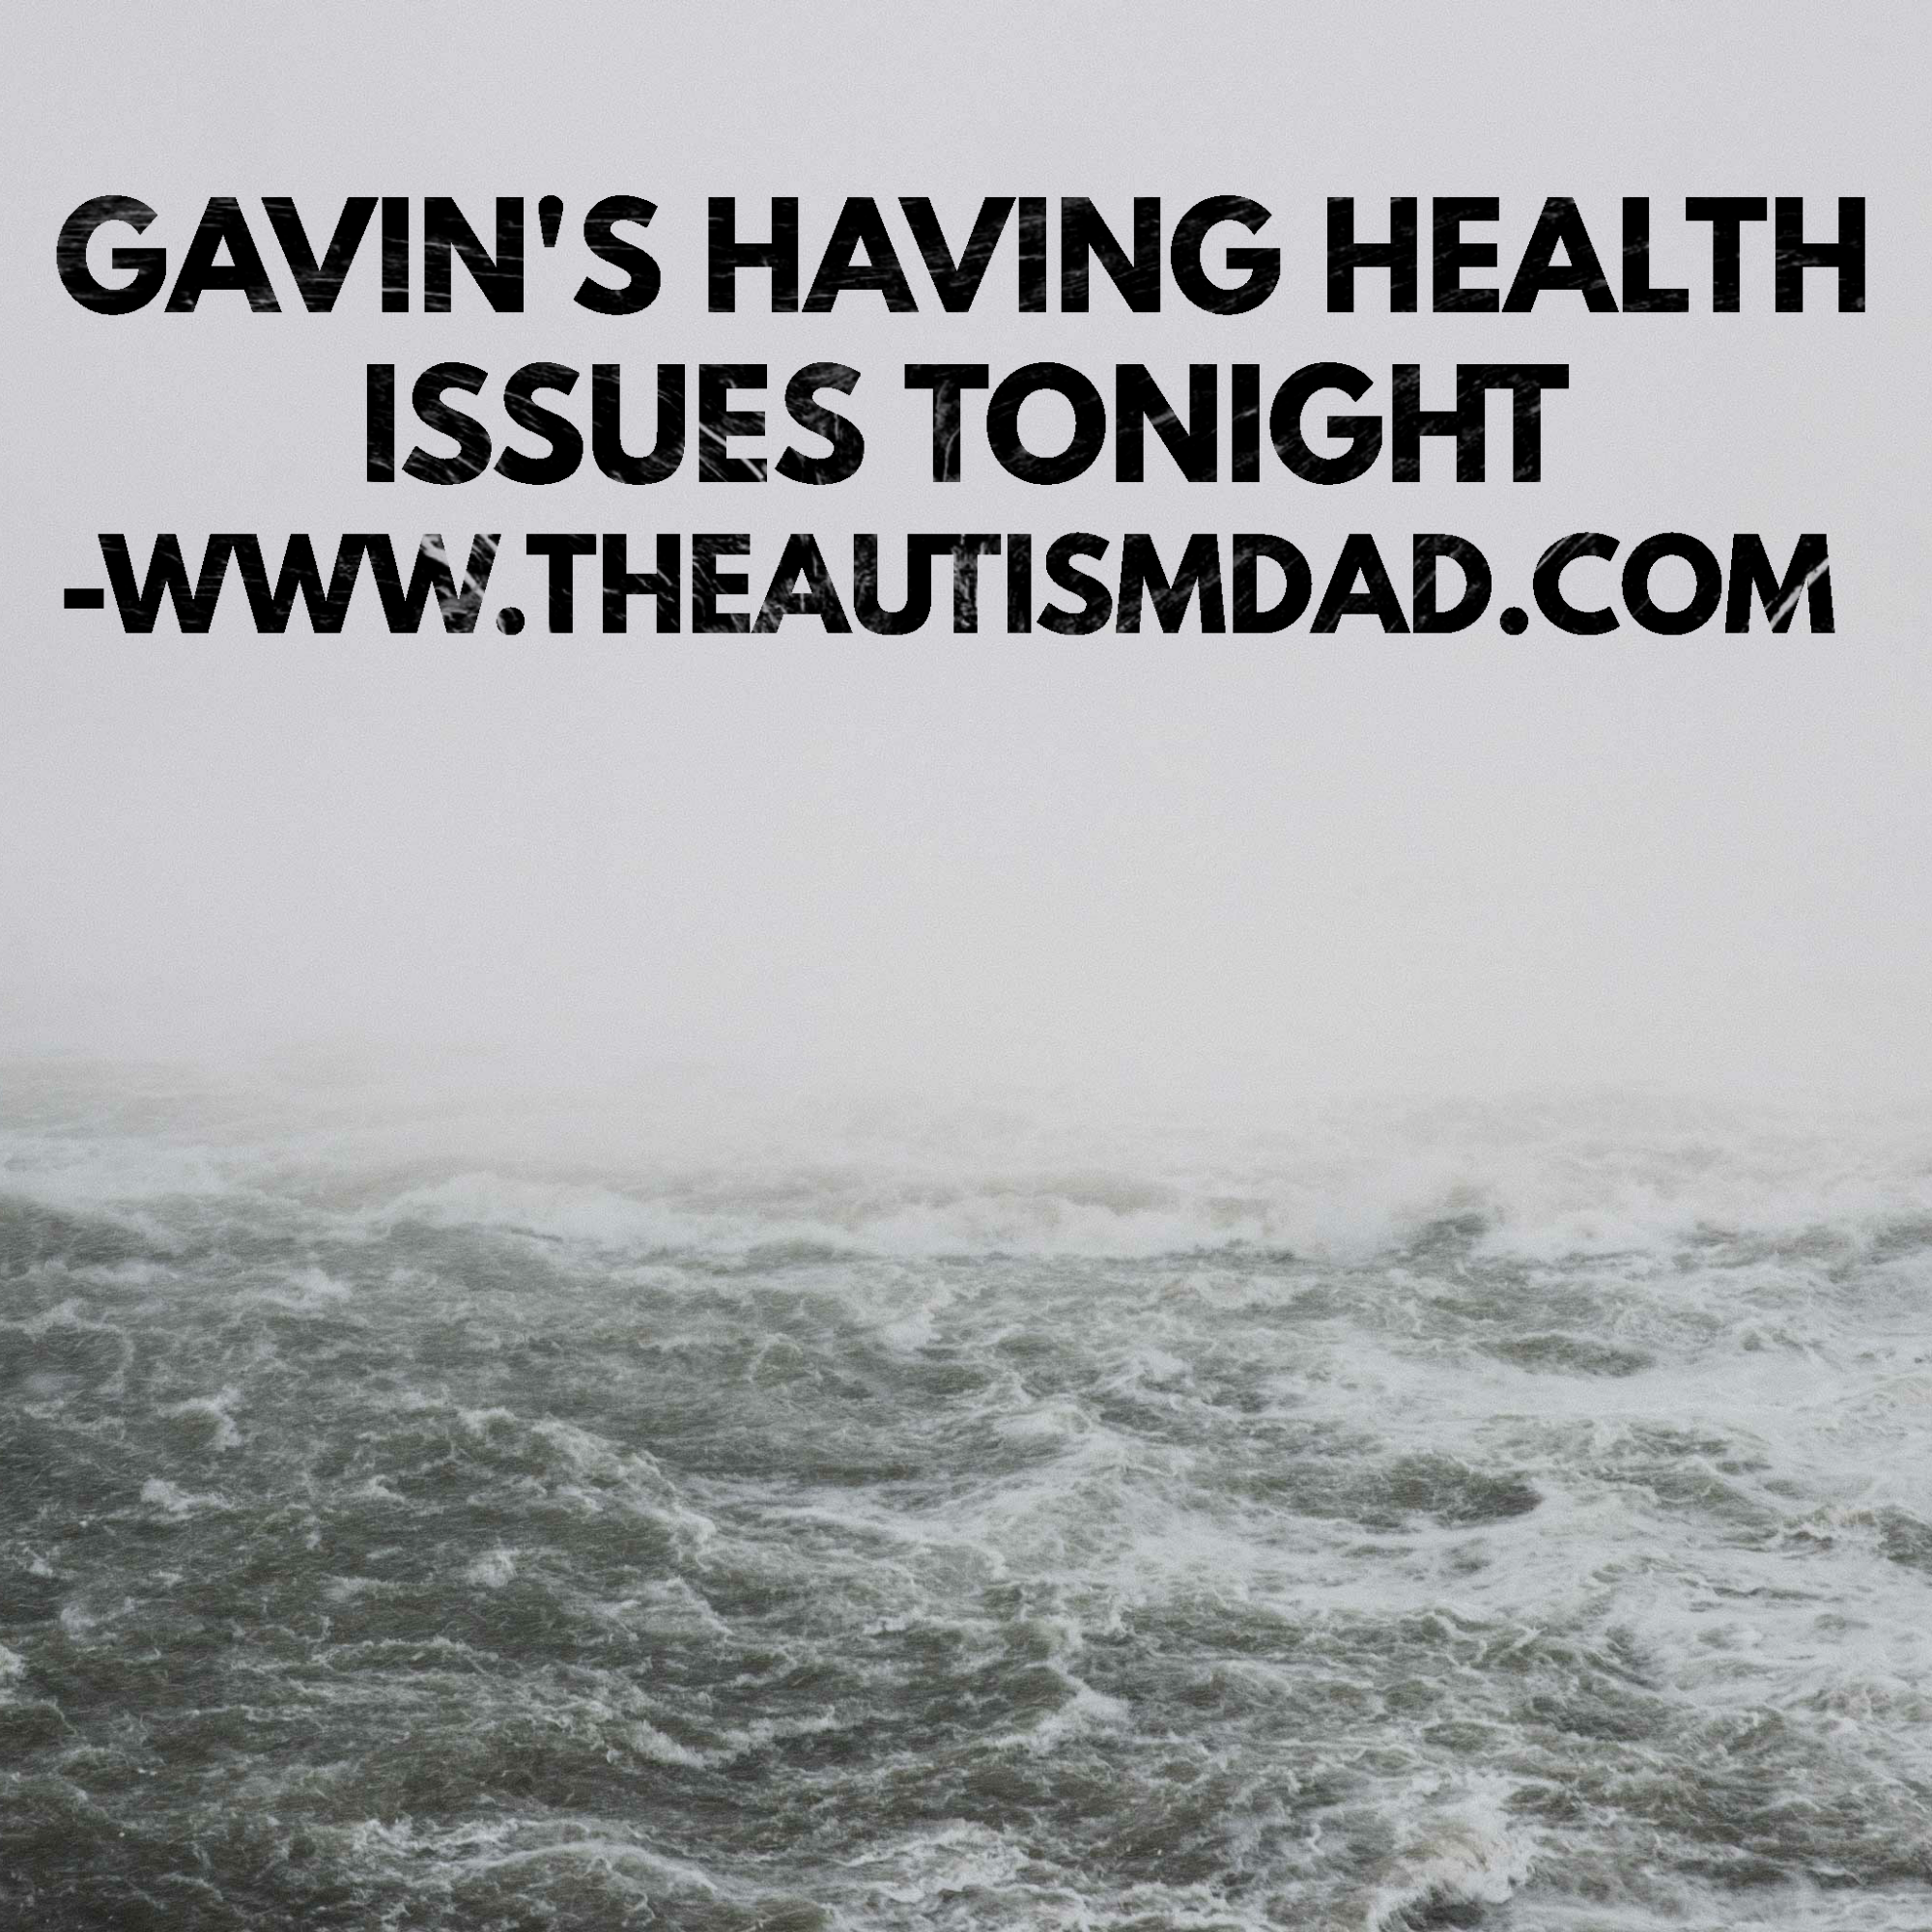 Gavin's having health issues tonight